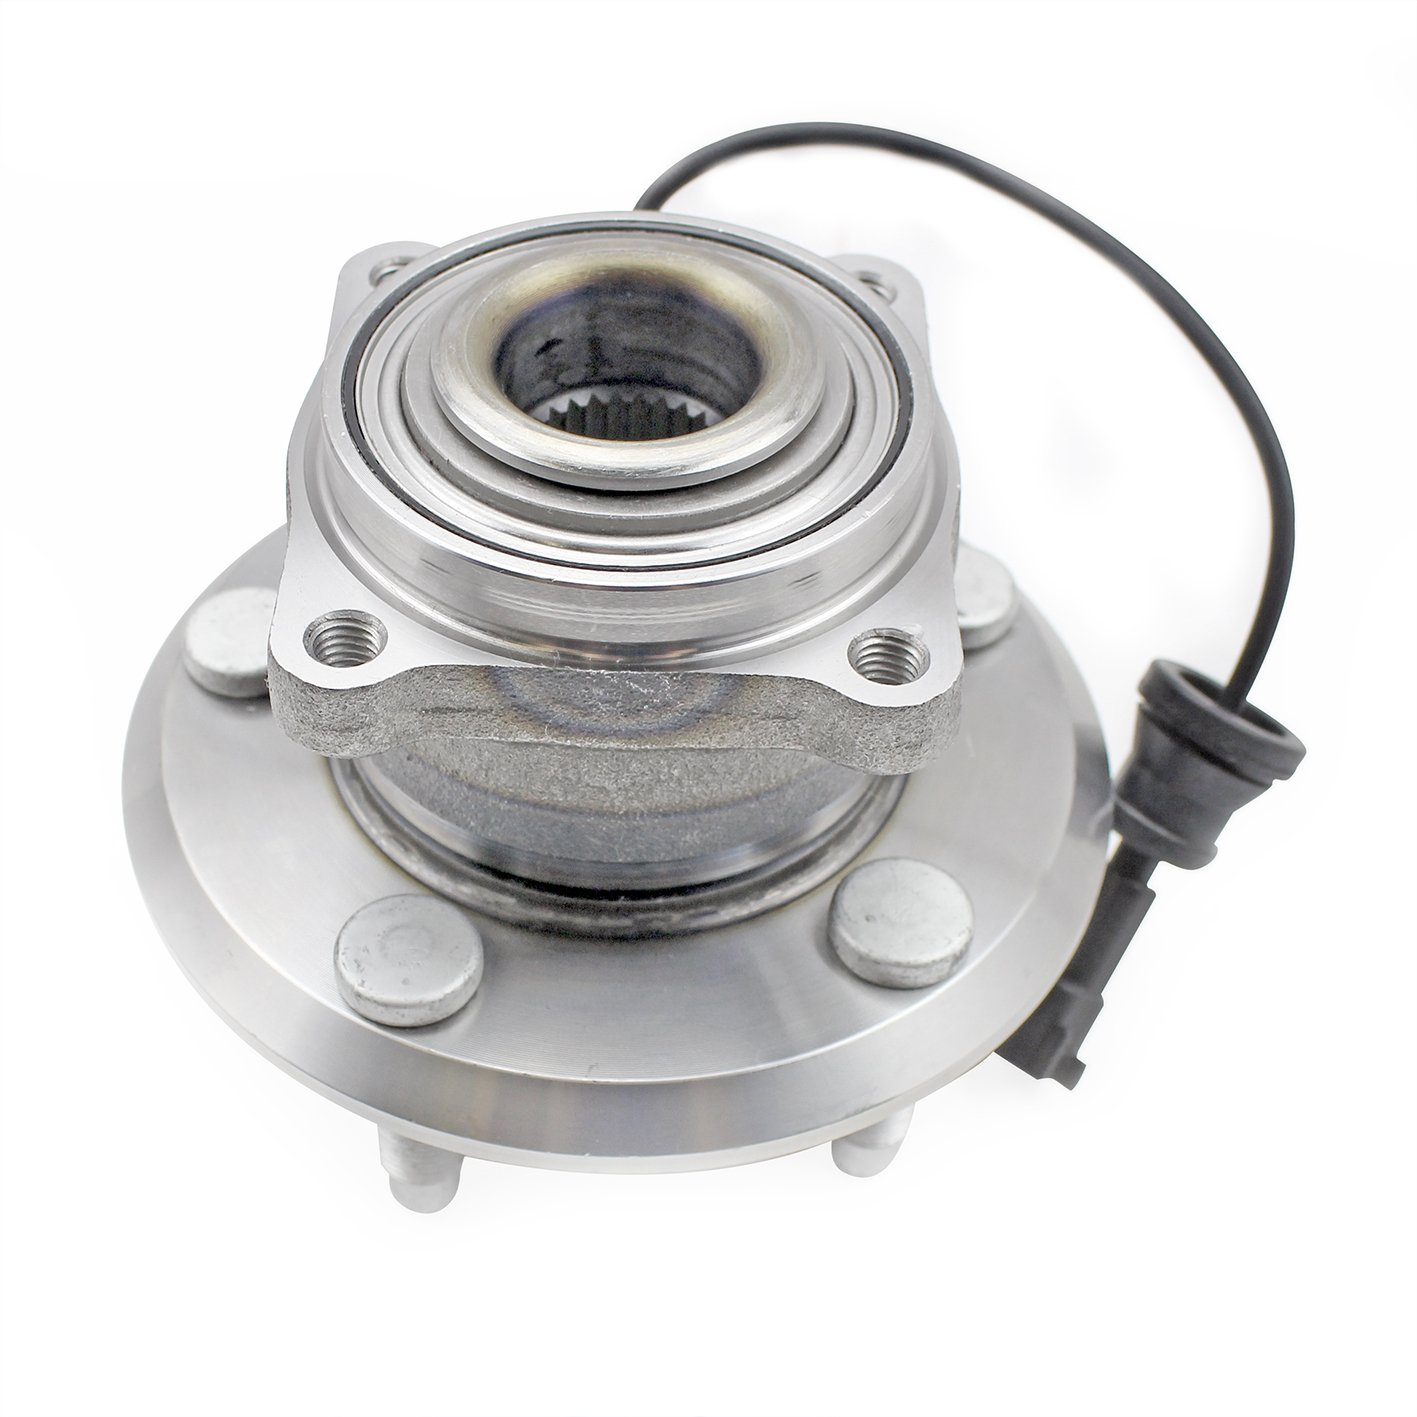 CRS NT930838 New Wheel Bearing Hub Assembly, Rear Left (Driver)/ Right (Passenger), for 2010-2016 Chevy Equinox, 2010-2016 GMC Terrain, FWD/AWD